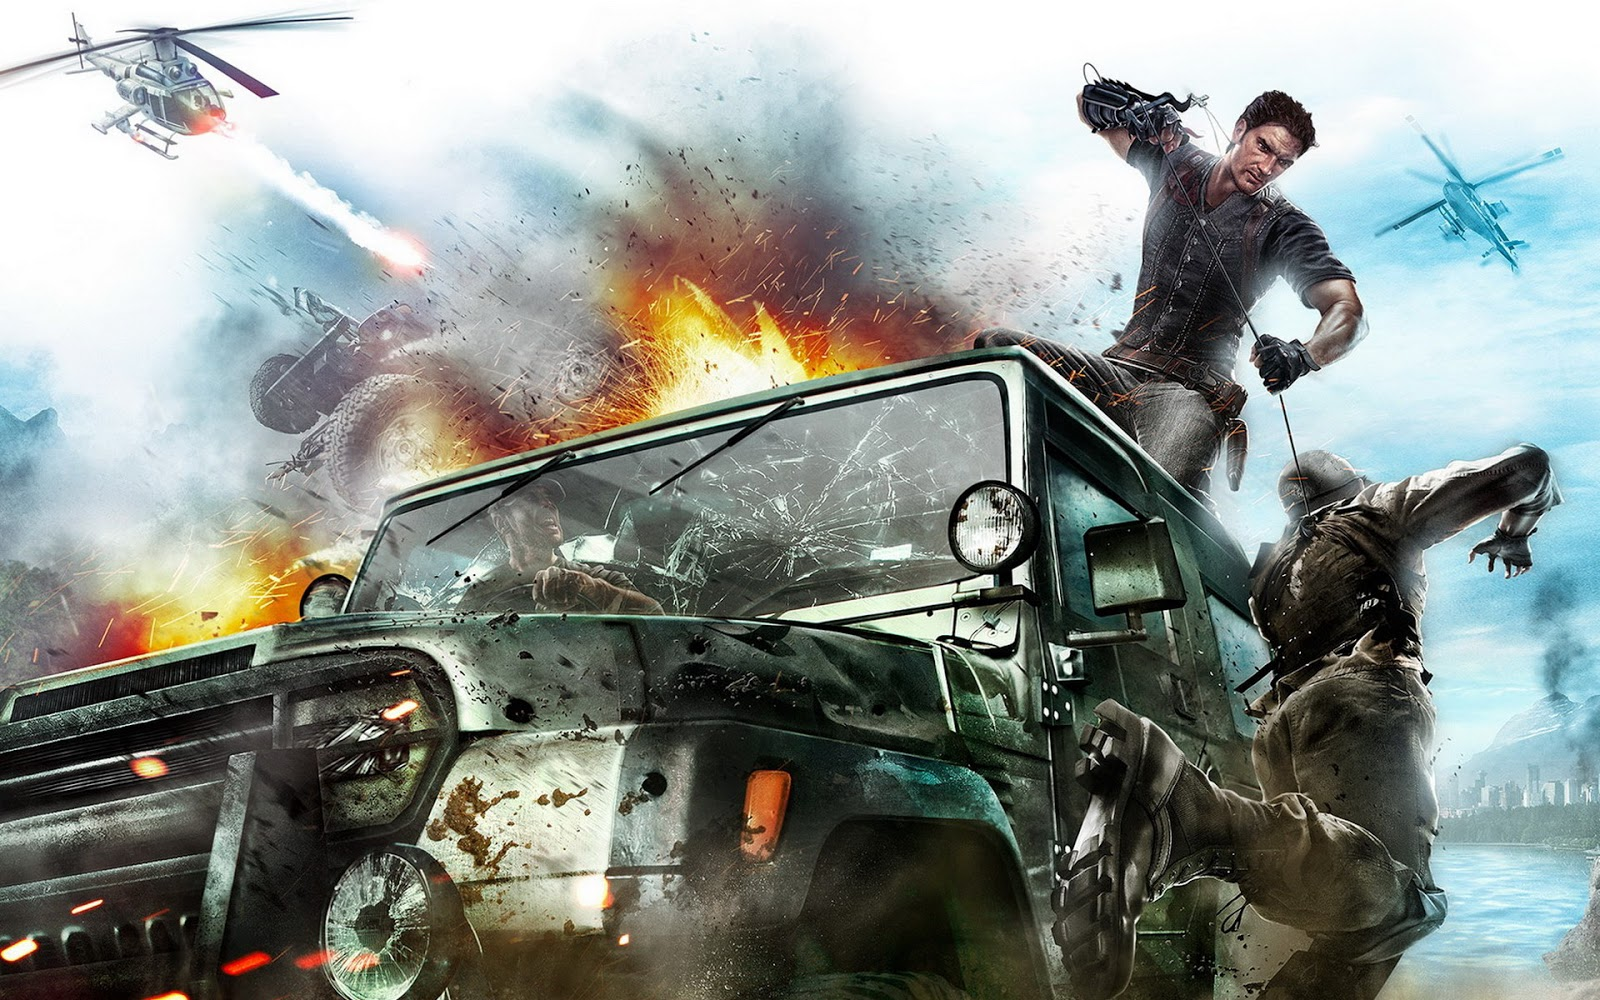 2010 Just Cause 2 Game hd games wallpapers